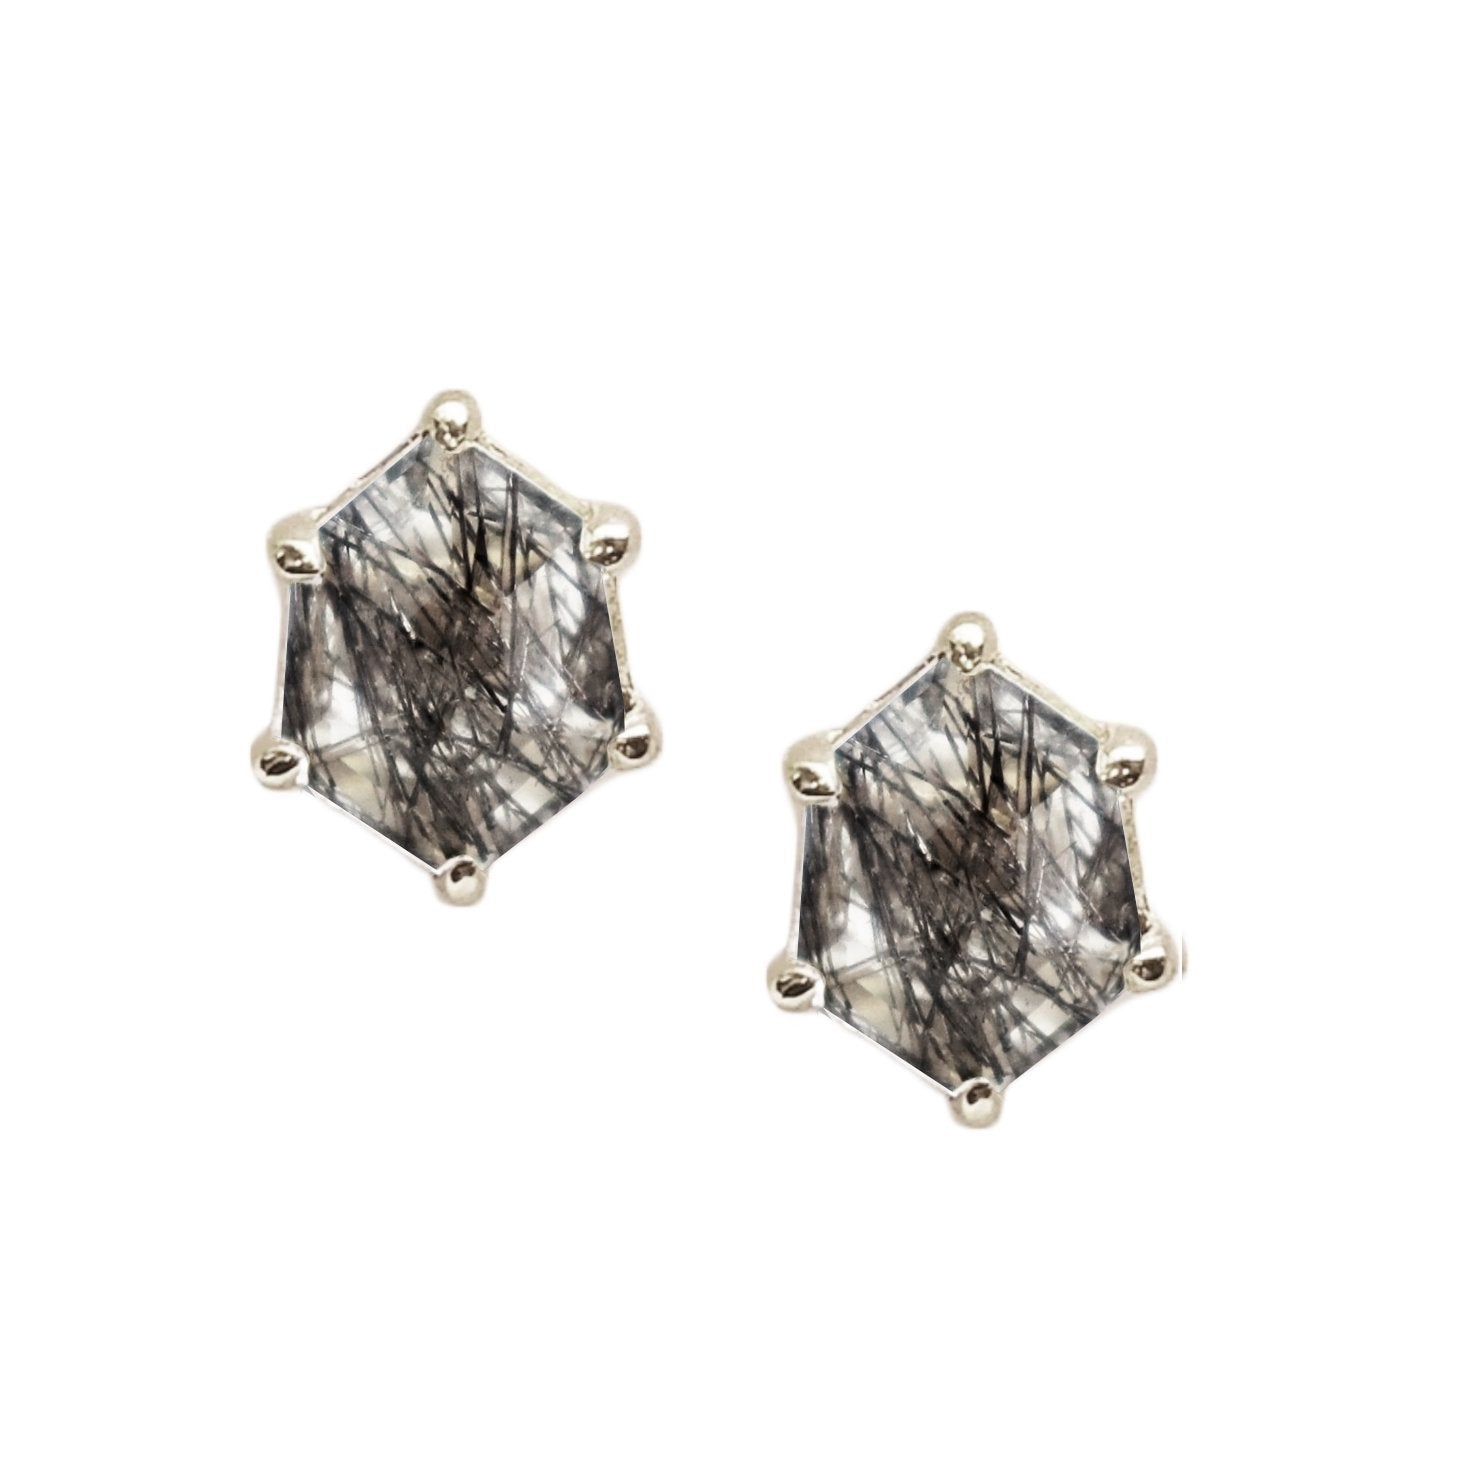 MINI HONOUR SHIELD STUD EARRINGS - BLACK RUTILE QUARTZ & SILVER - SO PRETTY CARA COTTER